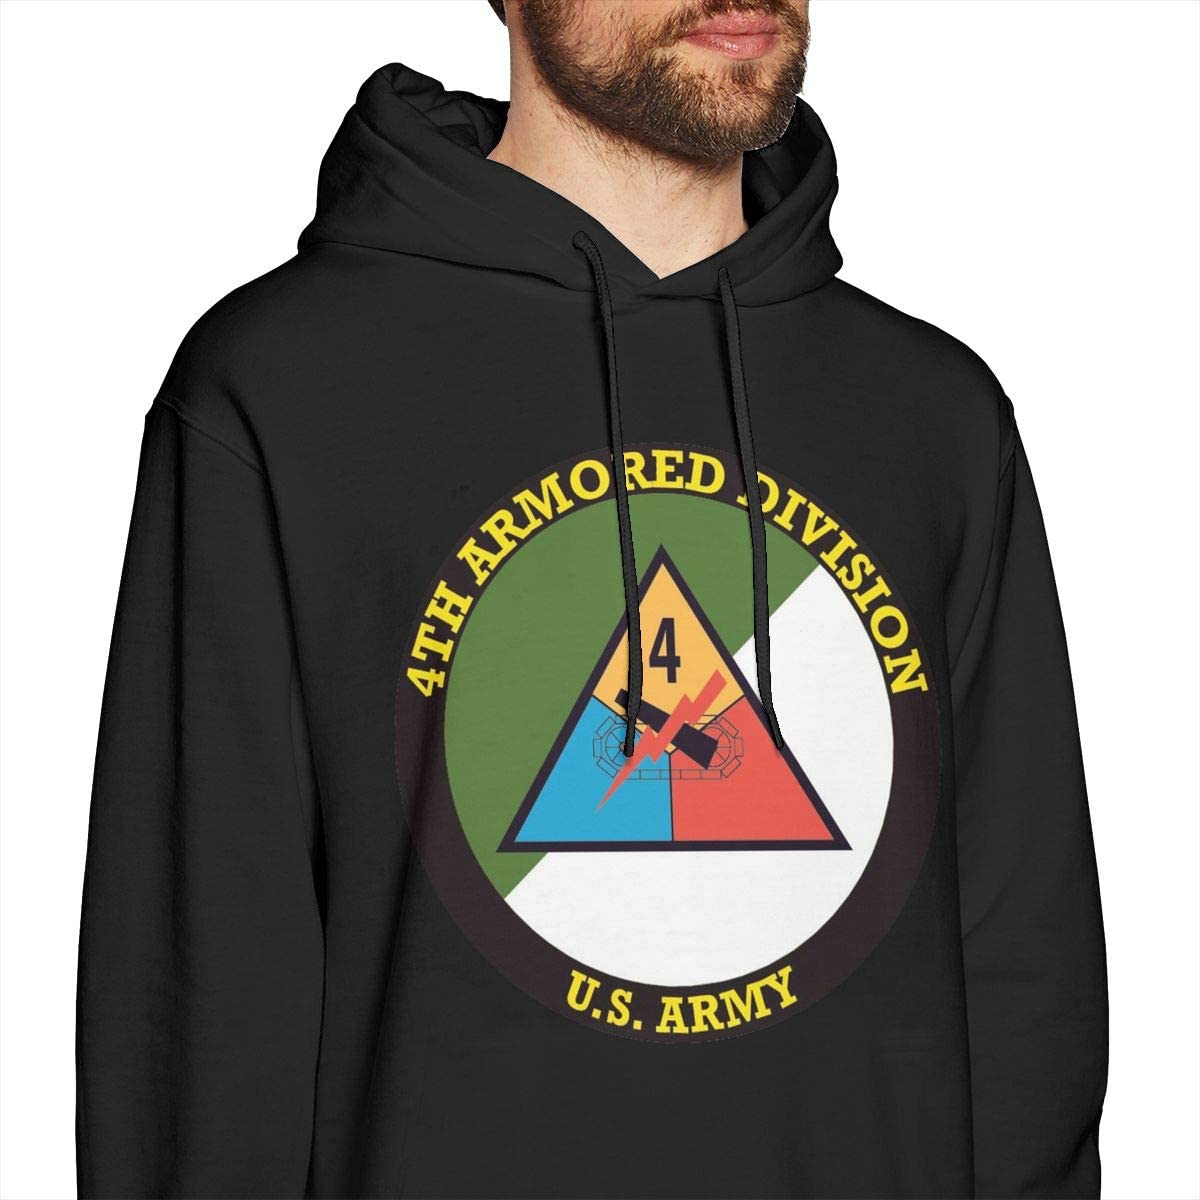 4th Armored Division Shield Mens Pullover Hooded Sweatshirt Cozy Sport Outwear Black